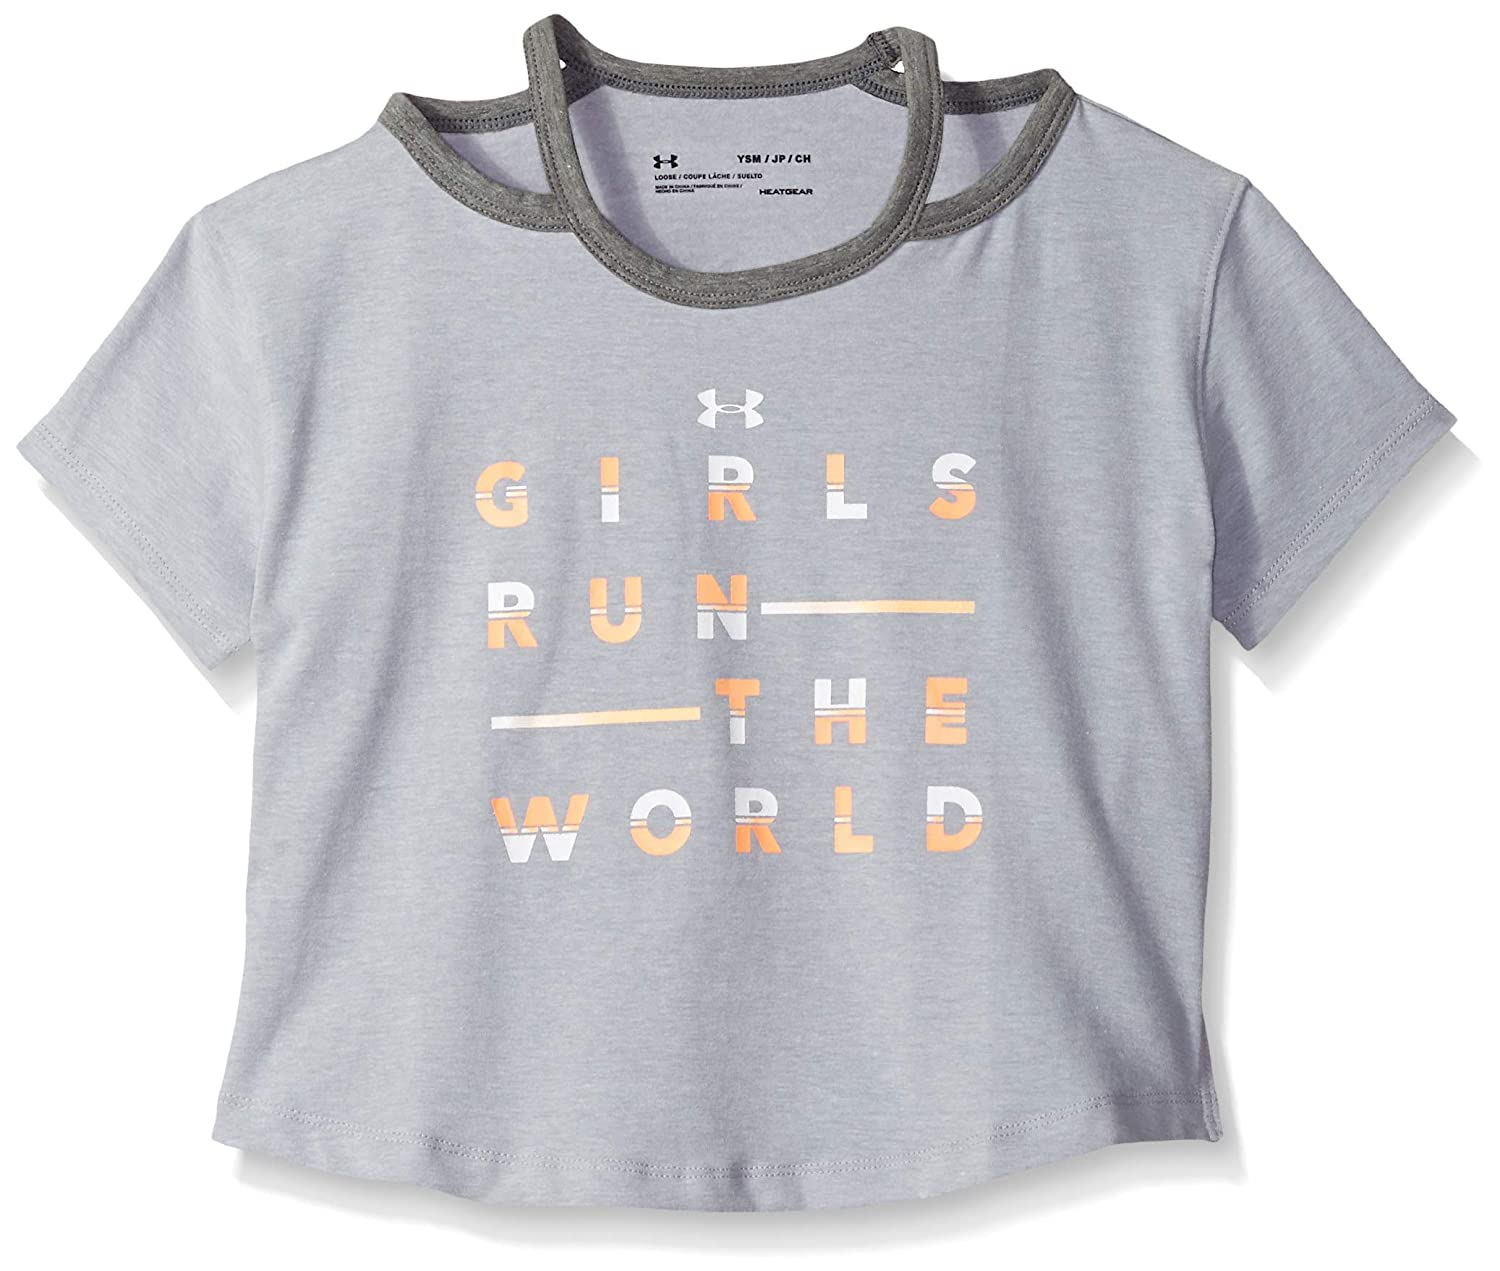 Under Armour Girls Finale Tee Girls Run The World